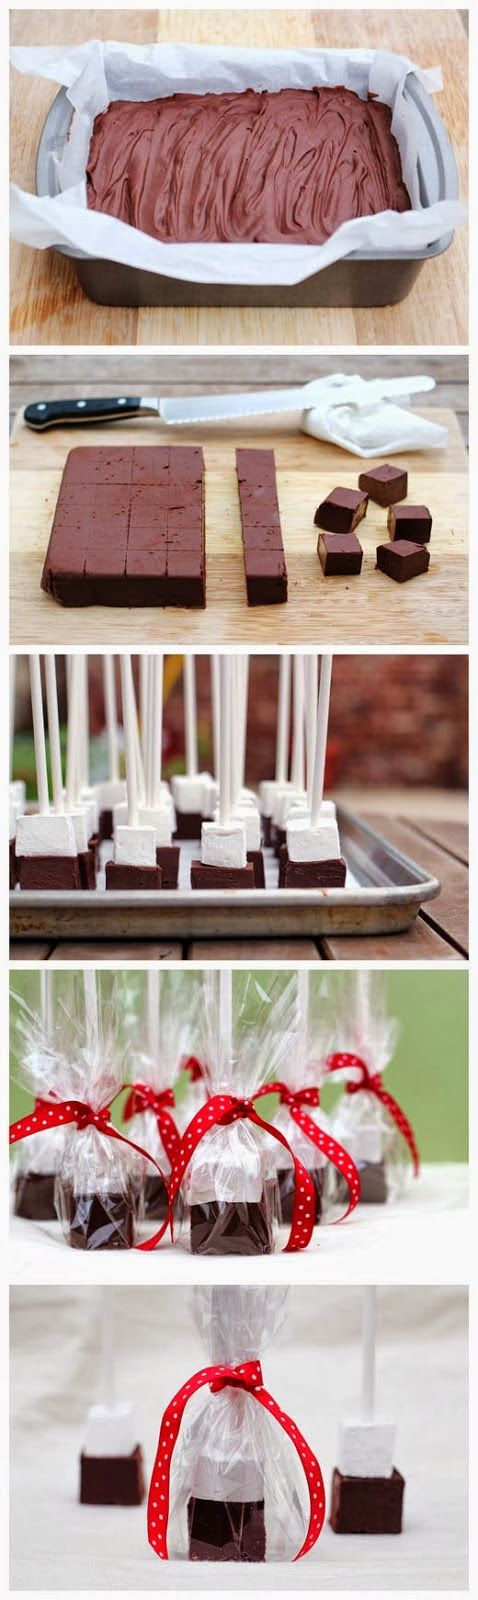 Fudge on a stick? Swirl these blocks into a mug of hot milk and enjoy luscious hot chocolate.